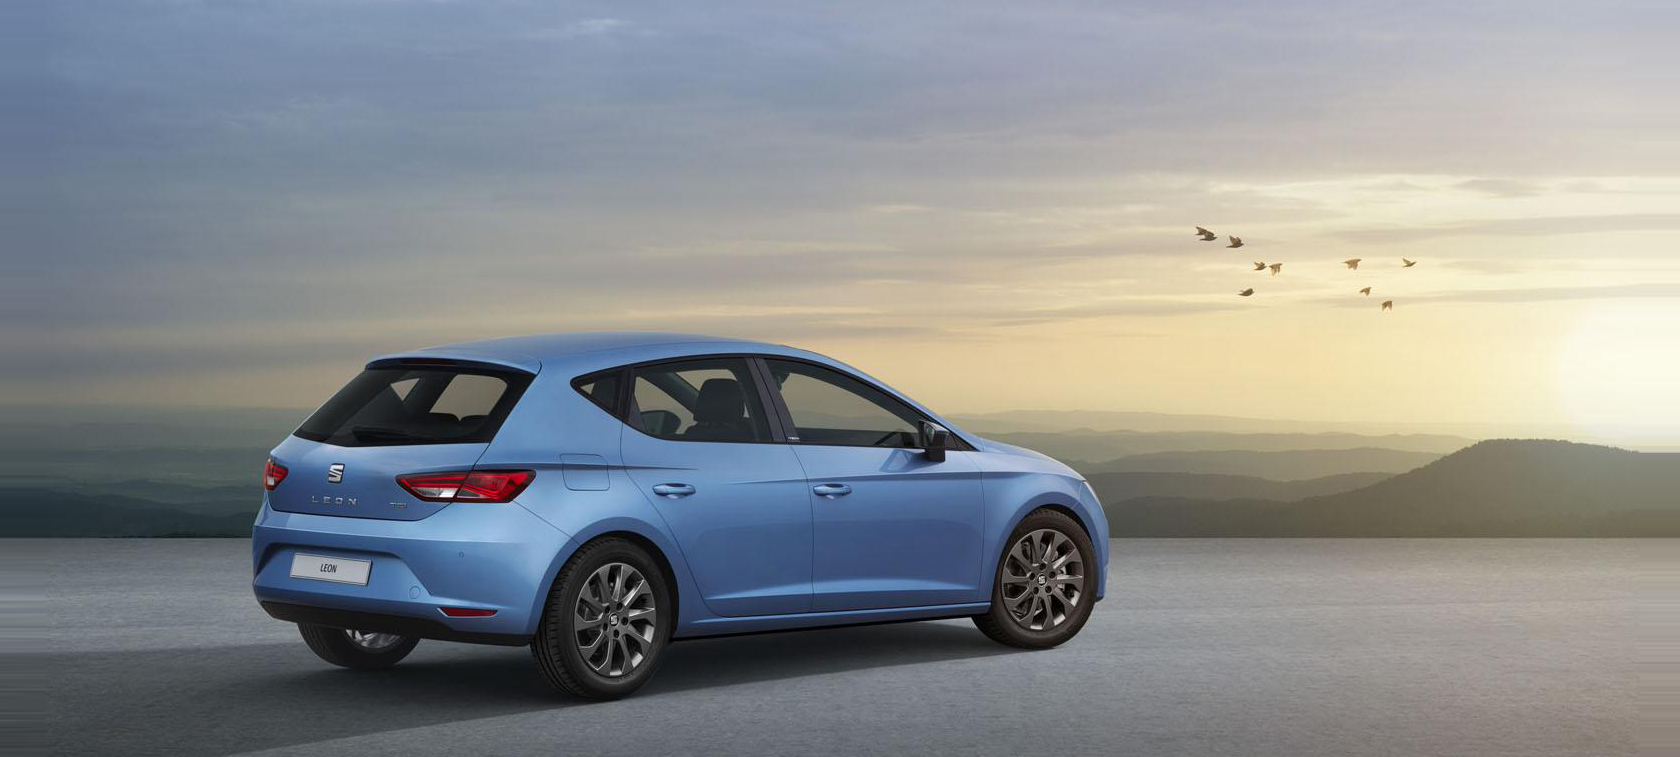 Seat Leon TGI - a not-so-surprising surprise